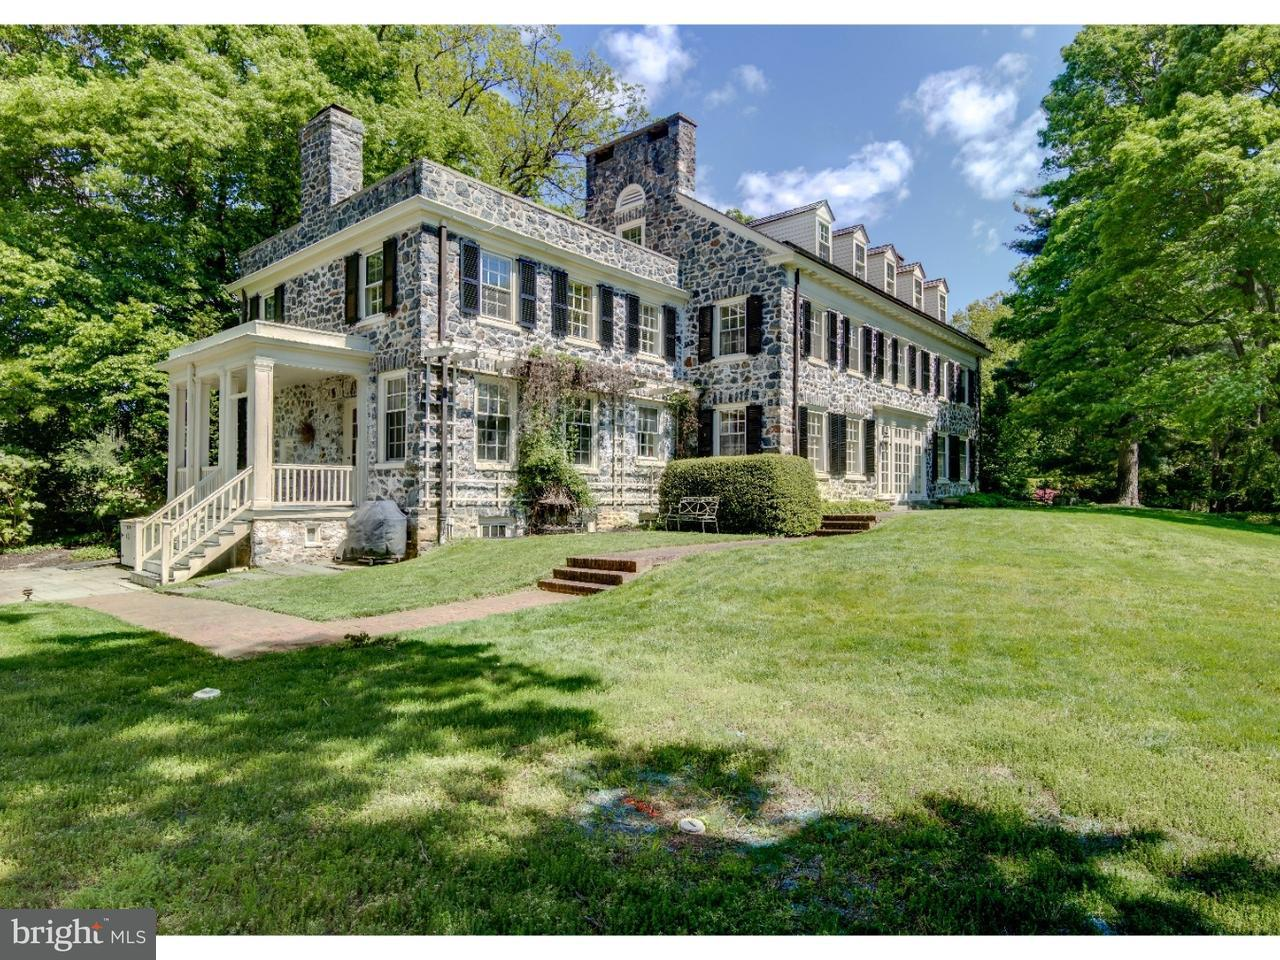 Single Family Home for Sale at 17 SELBORNE Drive Wilmington, Delaware 19807 United States